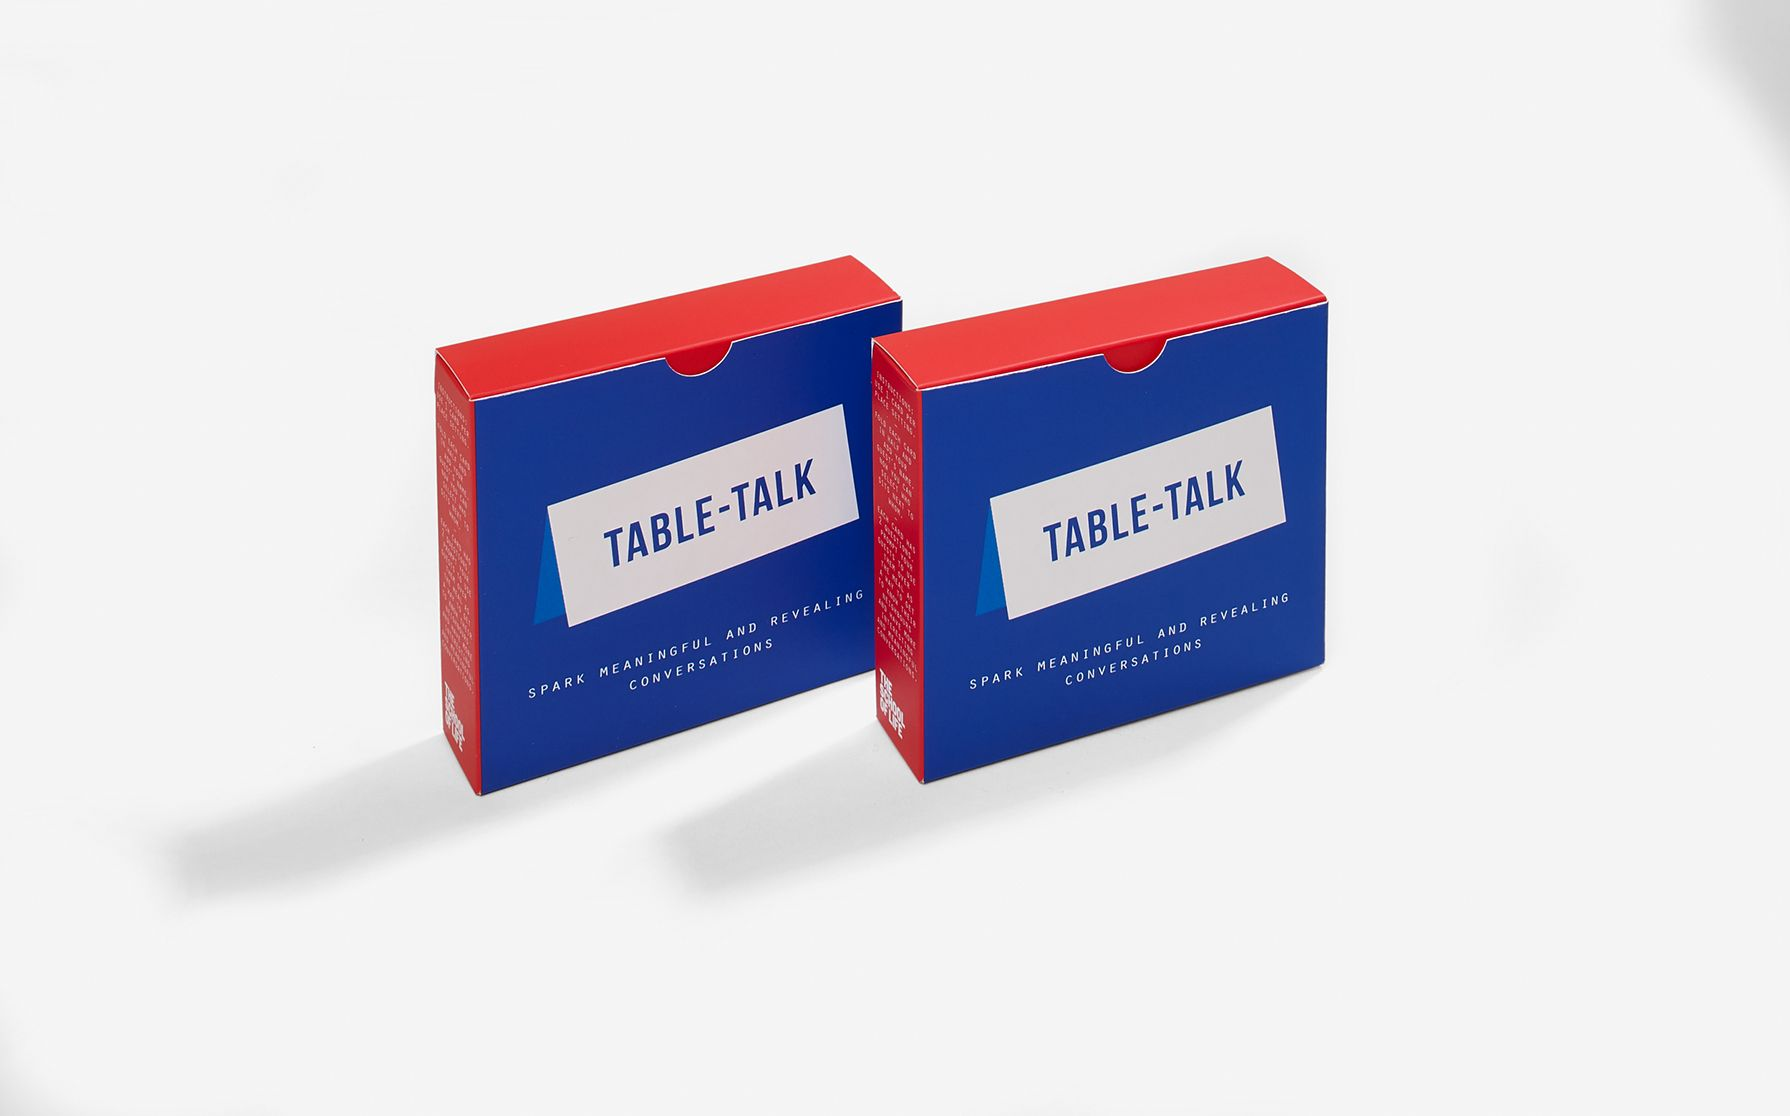 Table Talk: Spark Meaningful and Revealing Conversations